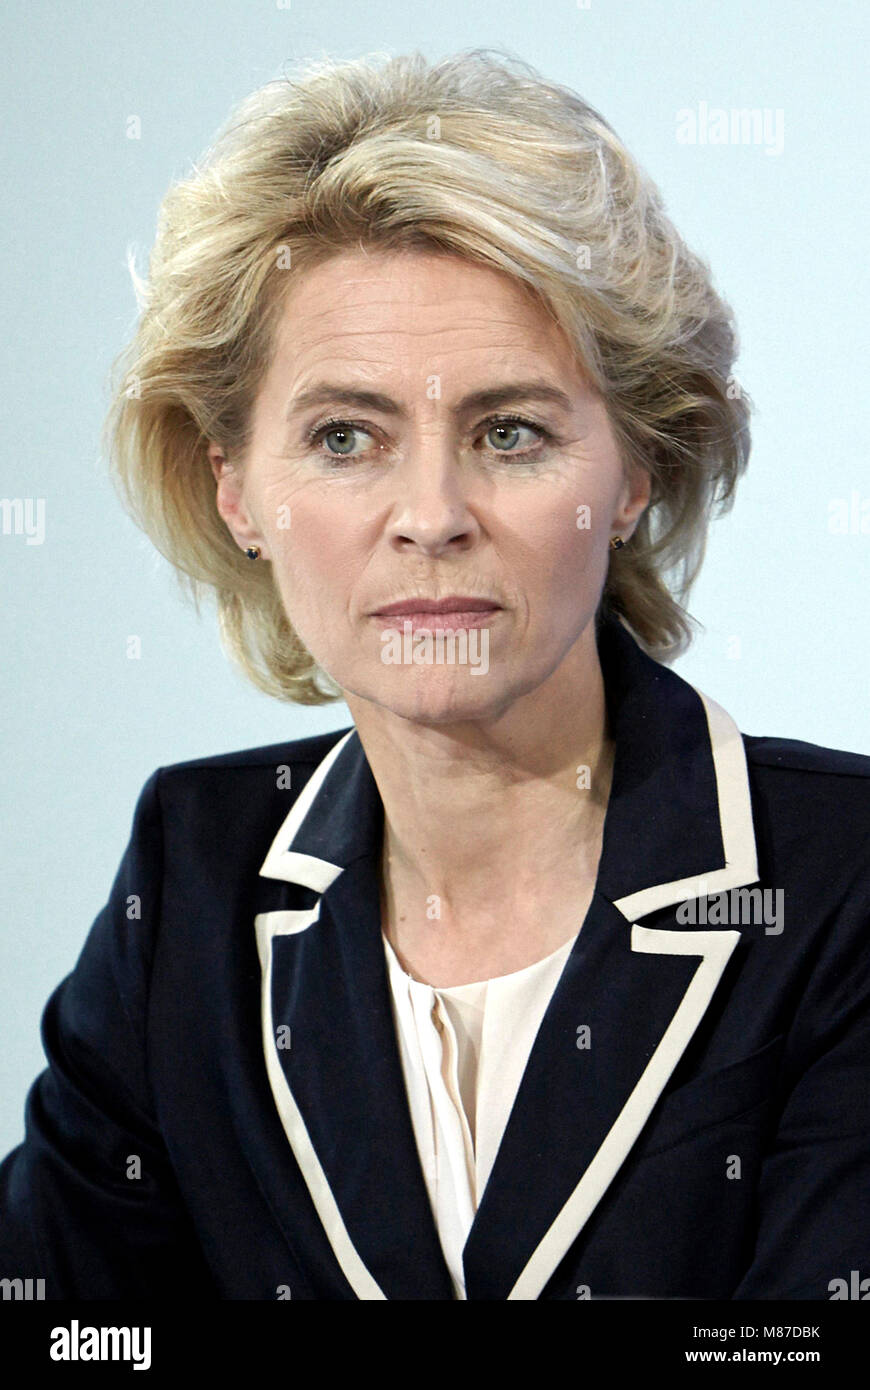 Ursula von der Leyen - 08.10.1958: German politician of the CDU and the Federal Minister of Defence since December - Stock Image